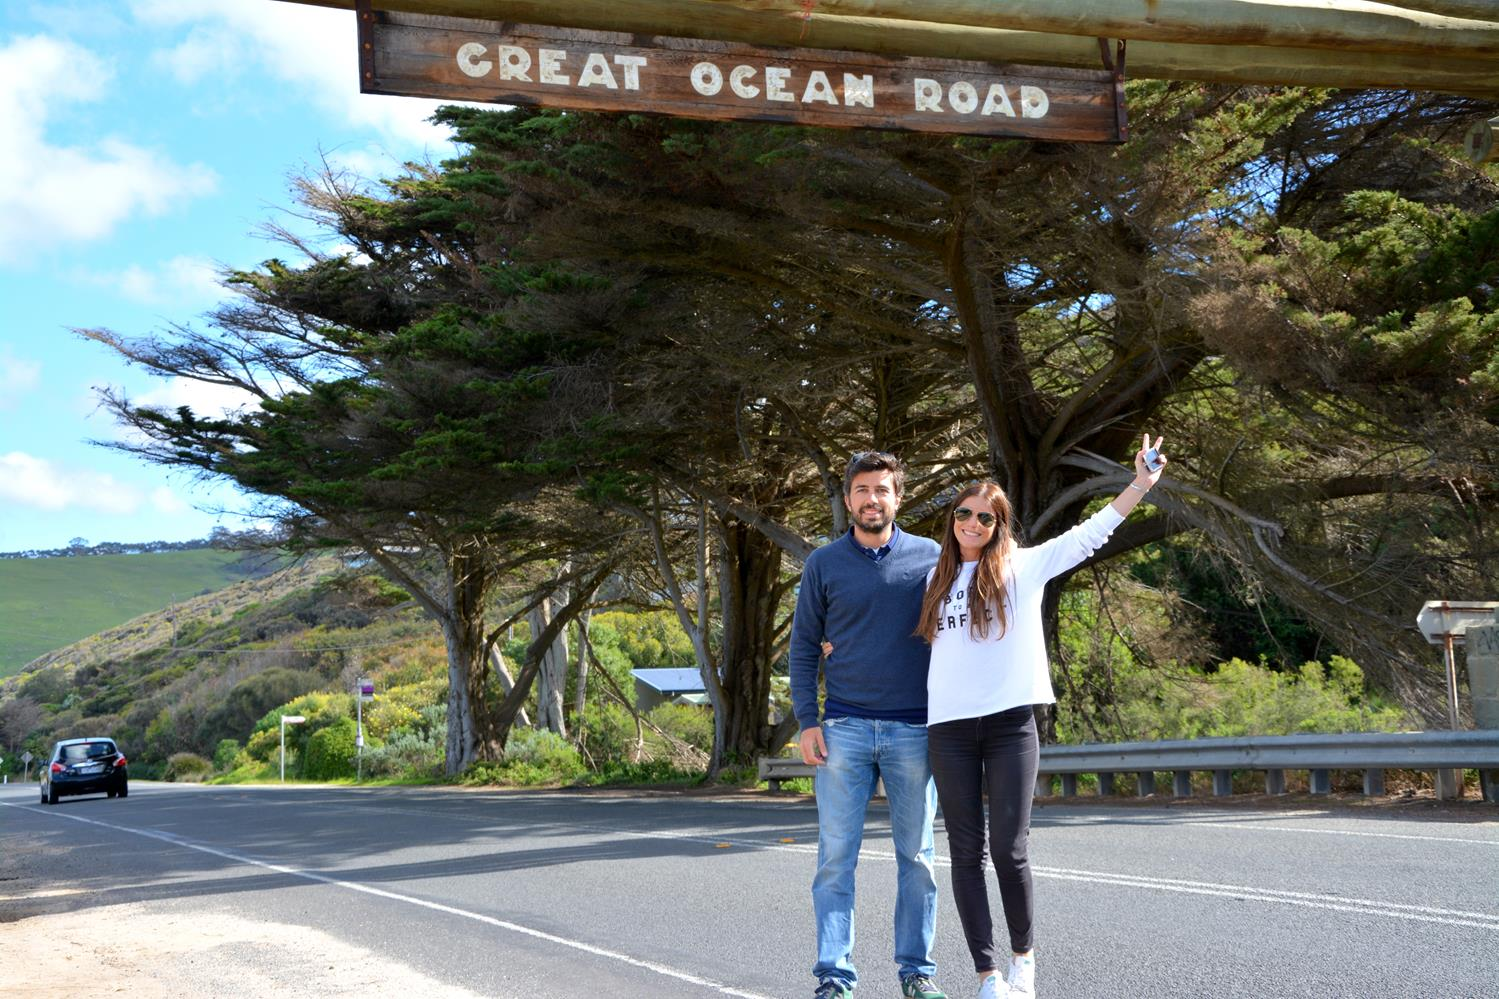 great_ocean_road_sign